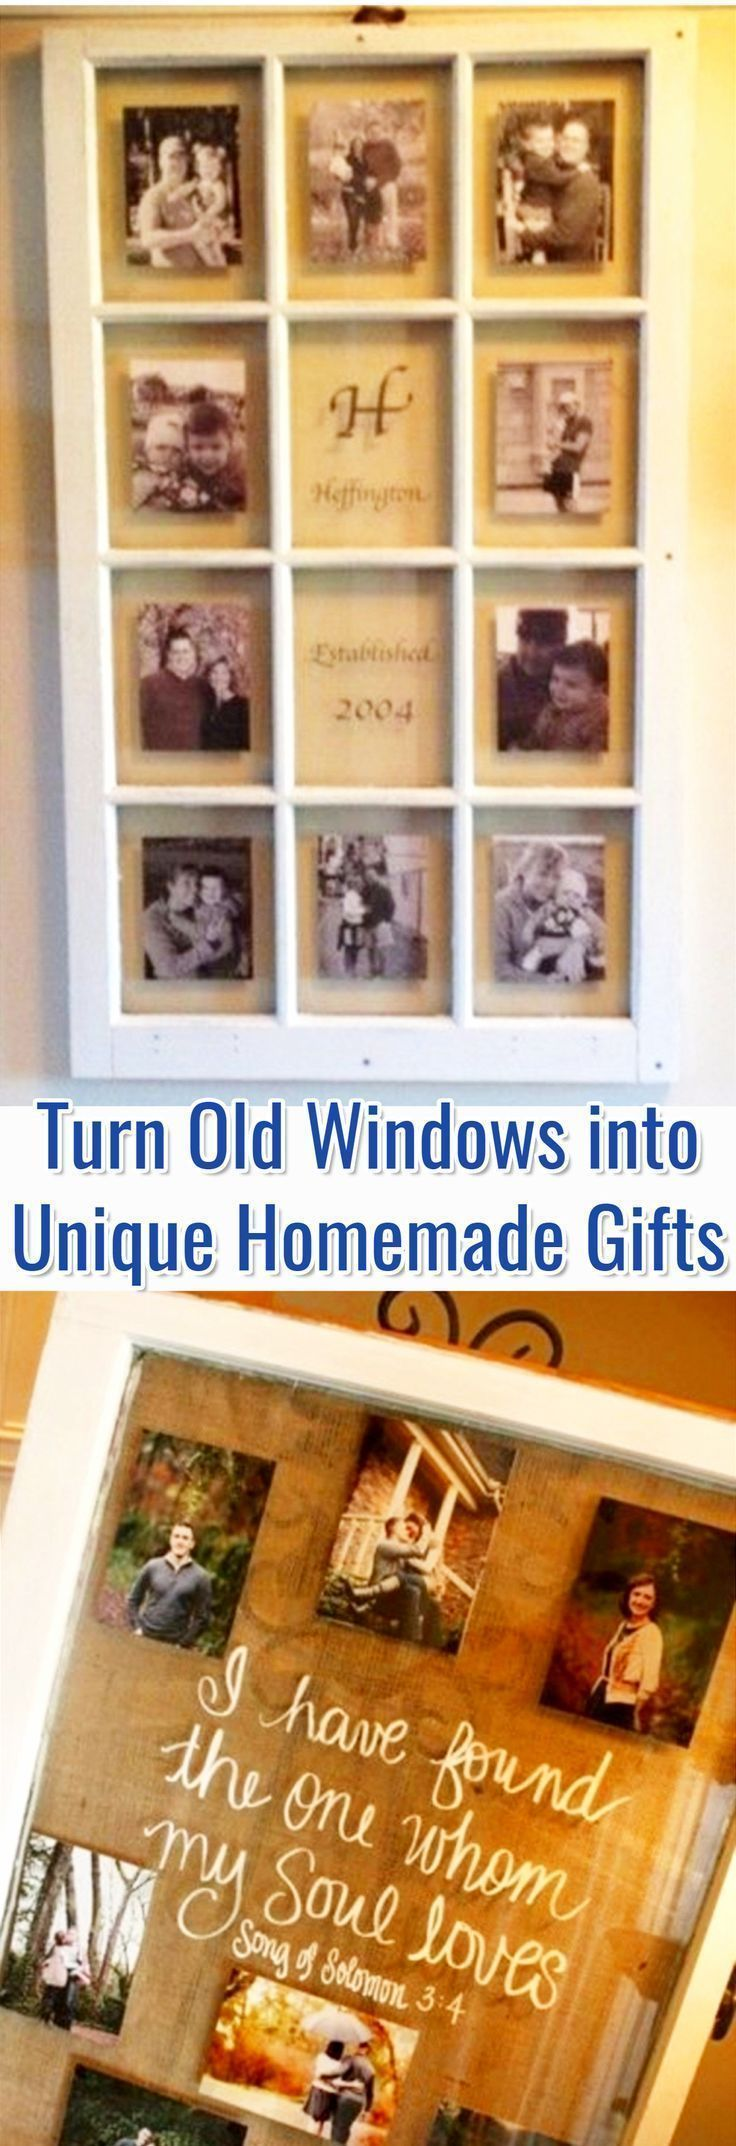 Turn Old Windows into Unique Homemade Gifts - Beautiful old window crafts for unique homemade gift ideas.  Love this idea to repurpose and upcycle old window frames into pictures and DIY wall decorations #HomemadeHouseDecorations, #uniquehomemadegift #HomemadeWallDecorations,